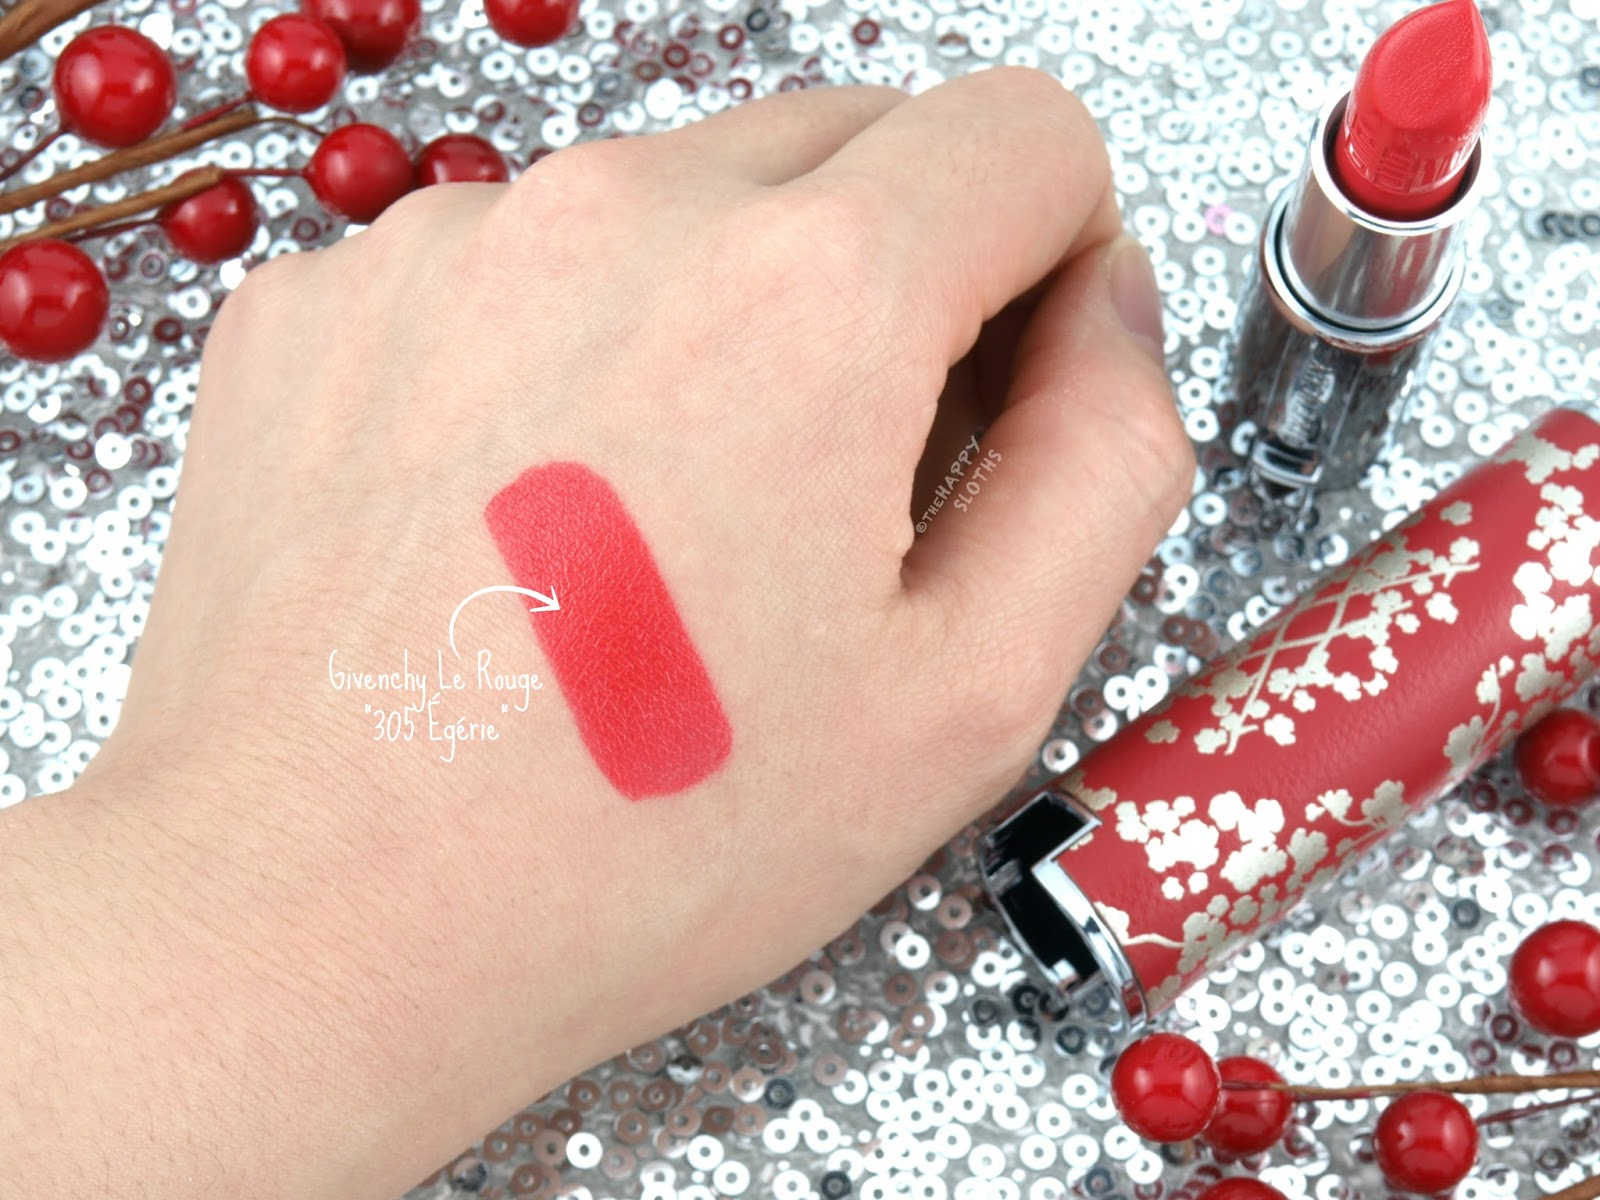 "Givenchy Lunar New Year 2018 | Le Rouge Lipstick in ""305 Egerie"": Review and Swatches"